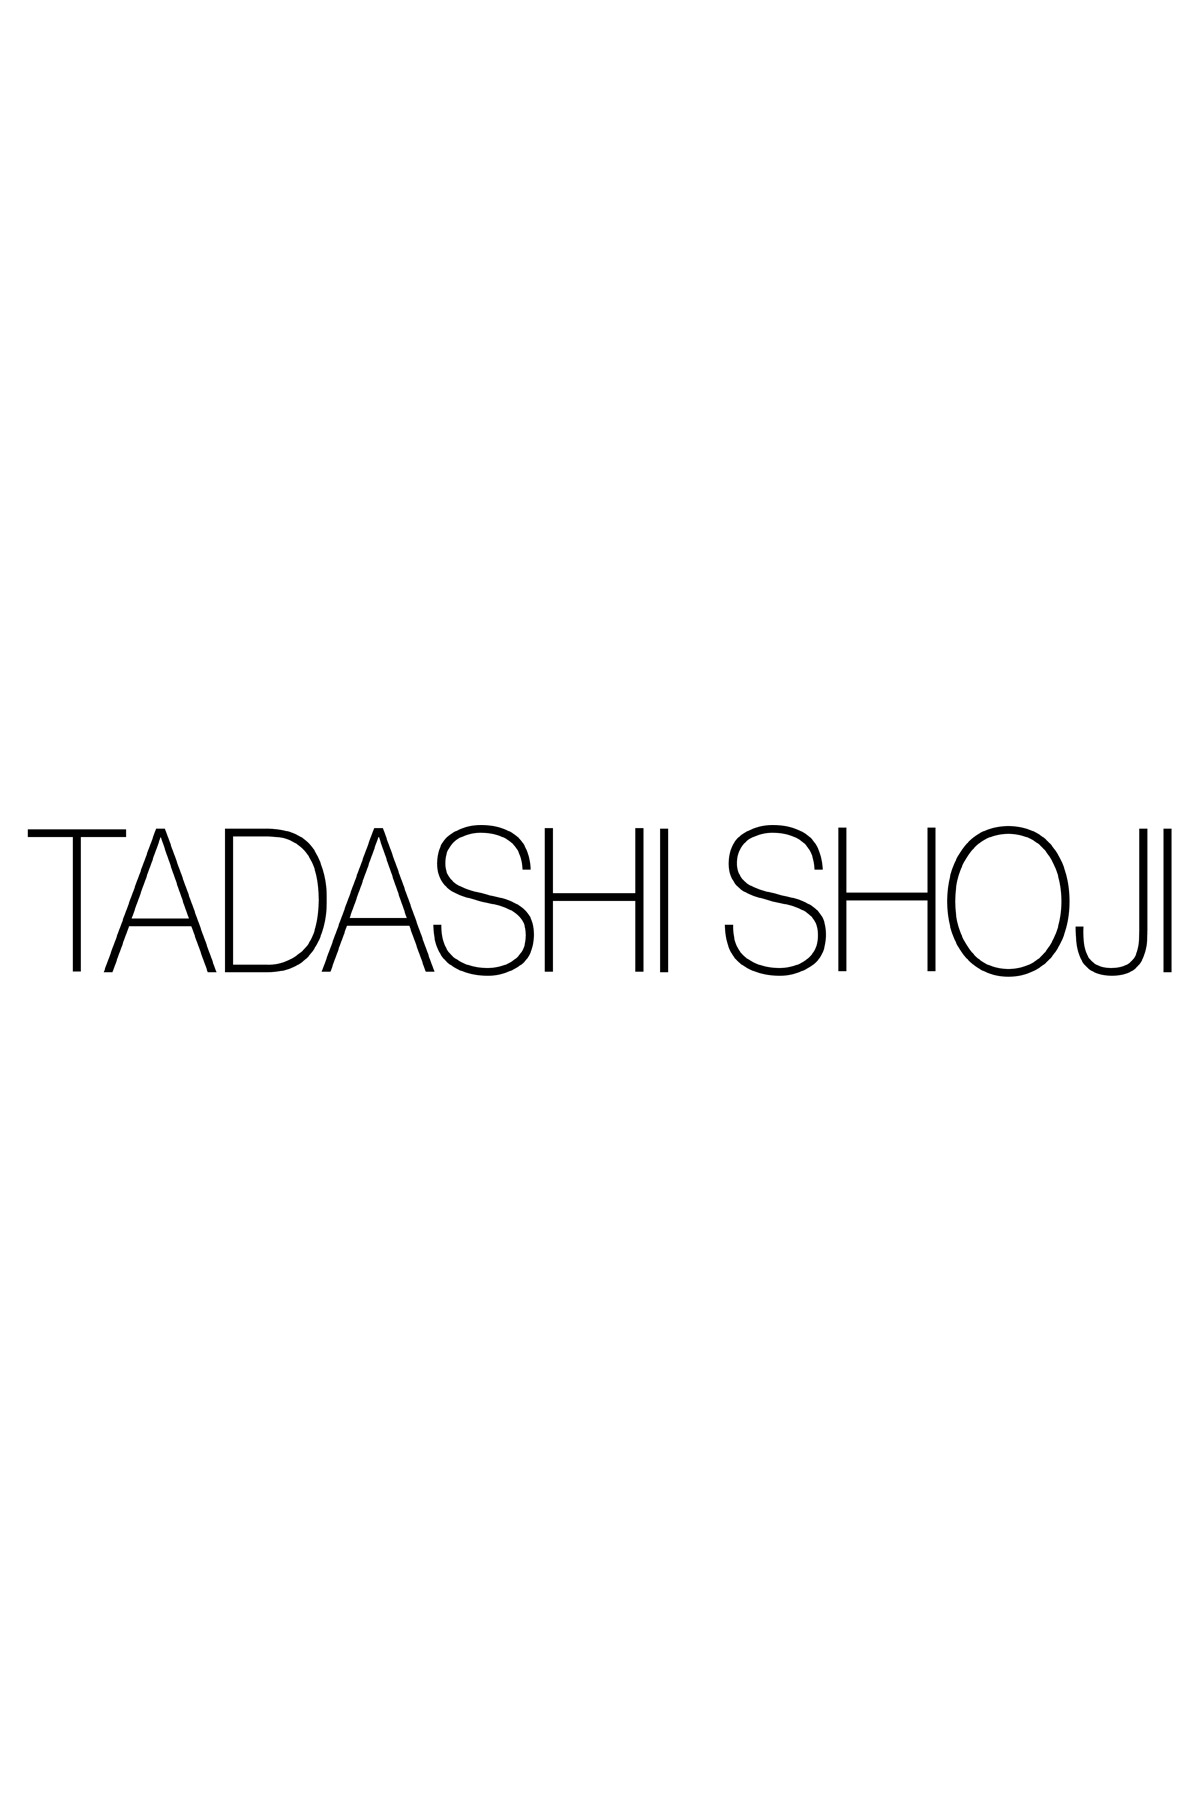 Tadashi Shoji x Bel Aire Bridal - Delicate Comb with Petite Flowers